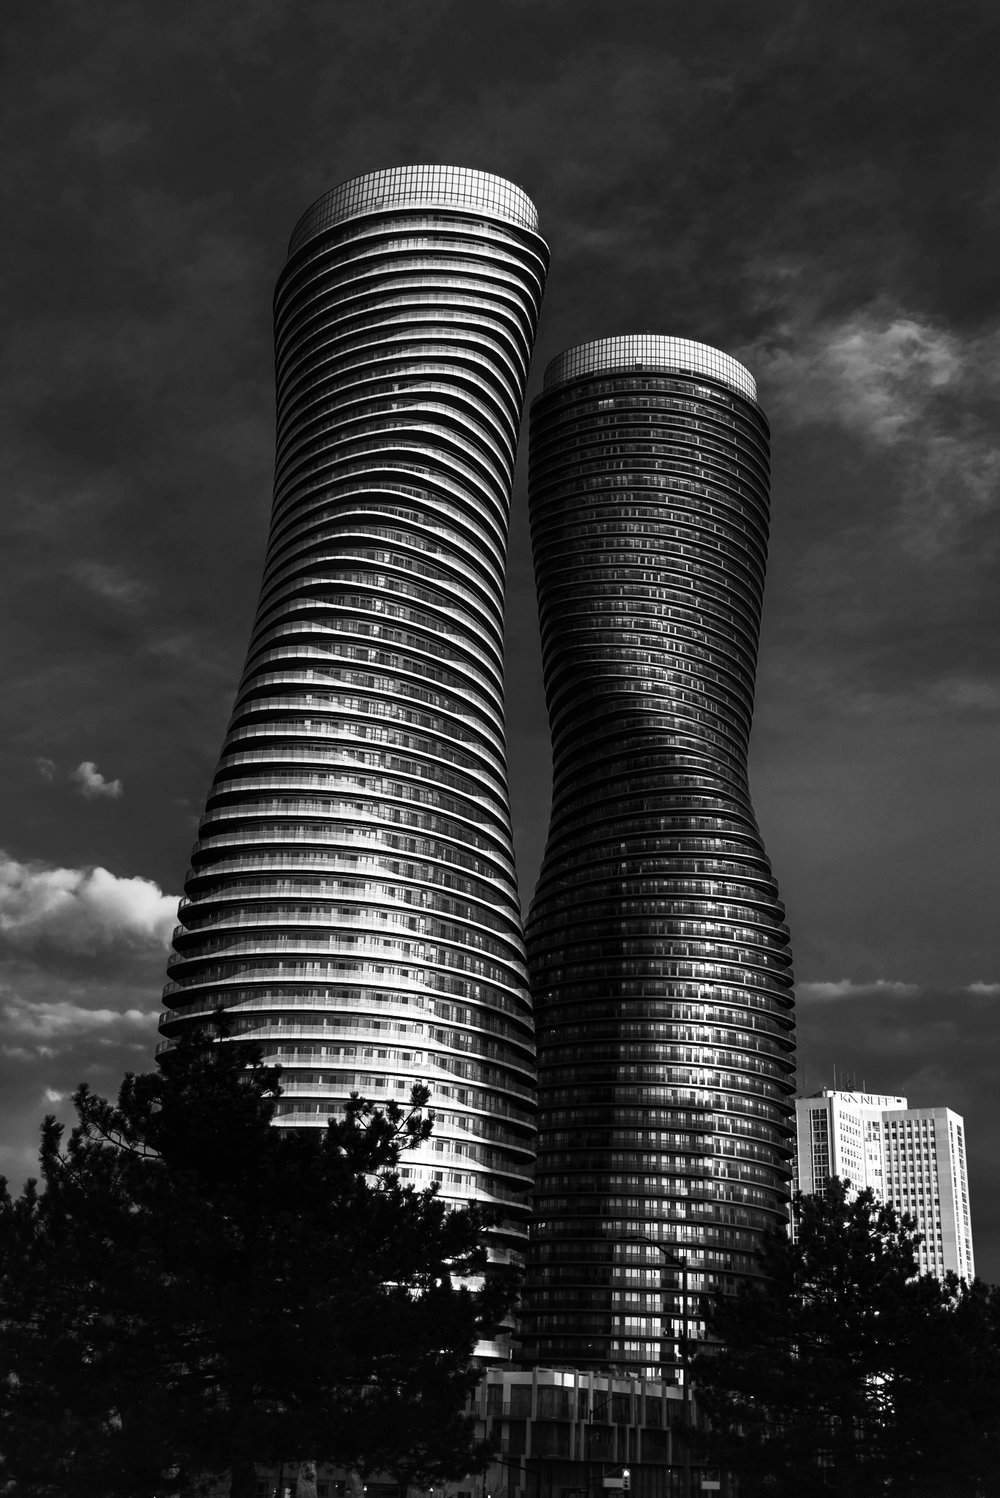 Absolute World - Marilyn Monroe Towers by Marek Michalek 01.jpg